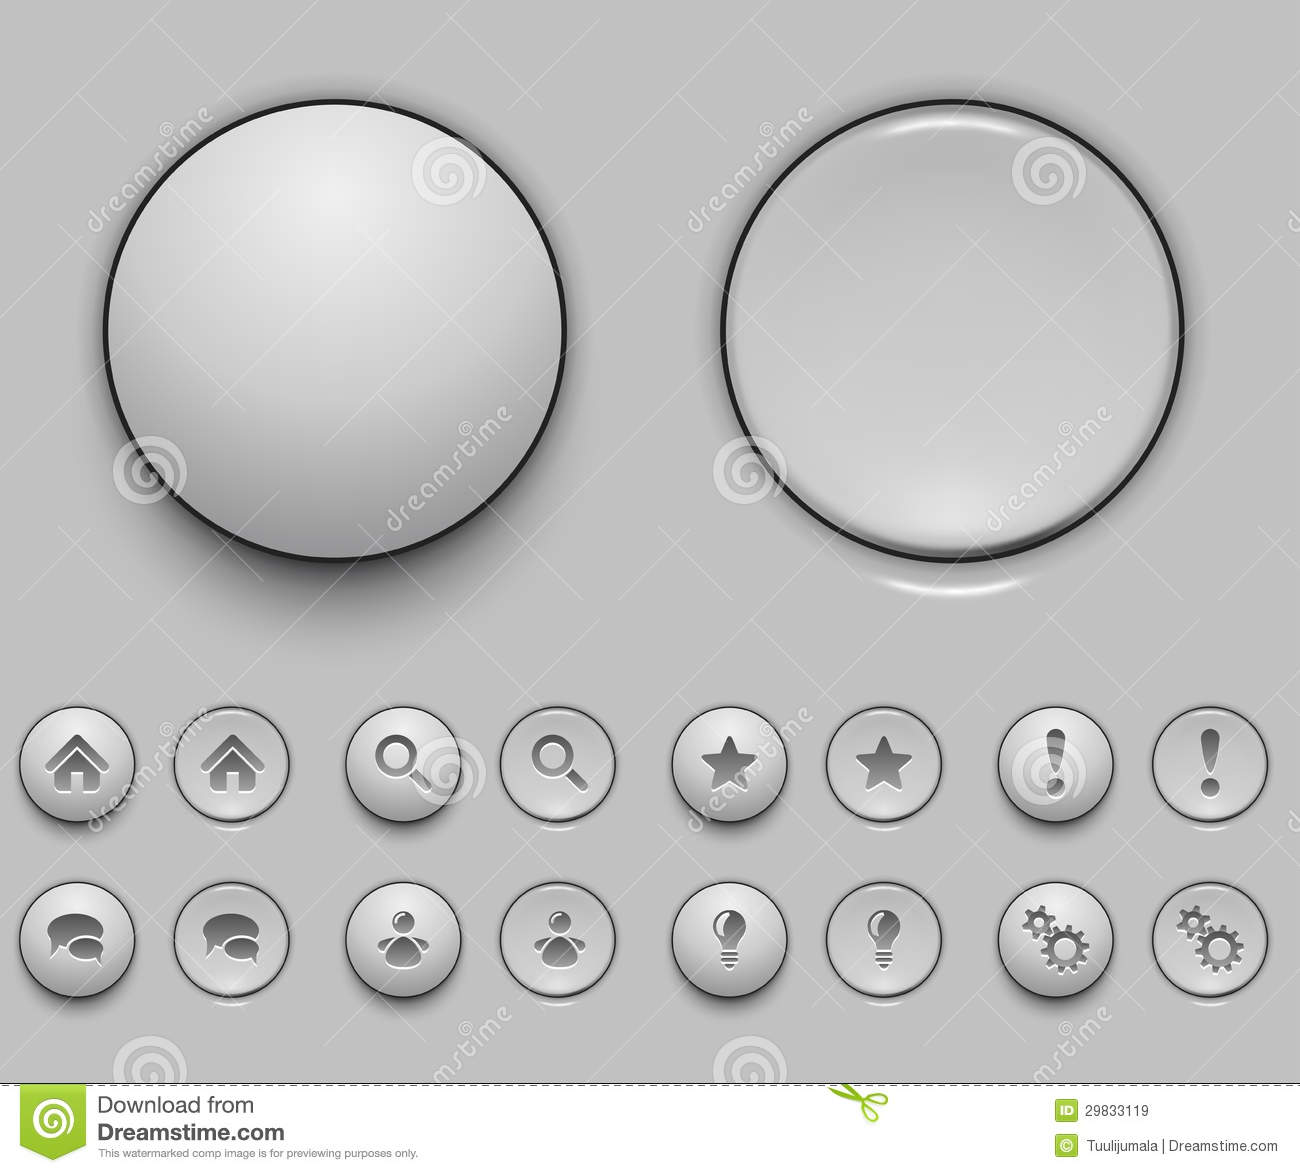 blank white push button template stock vector image 29833119. Black Bedroom Furniture Sets. Home Design Ideas